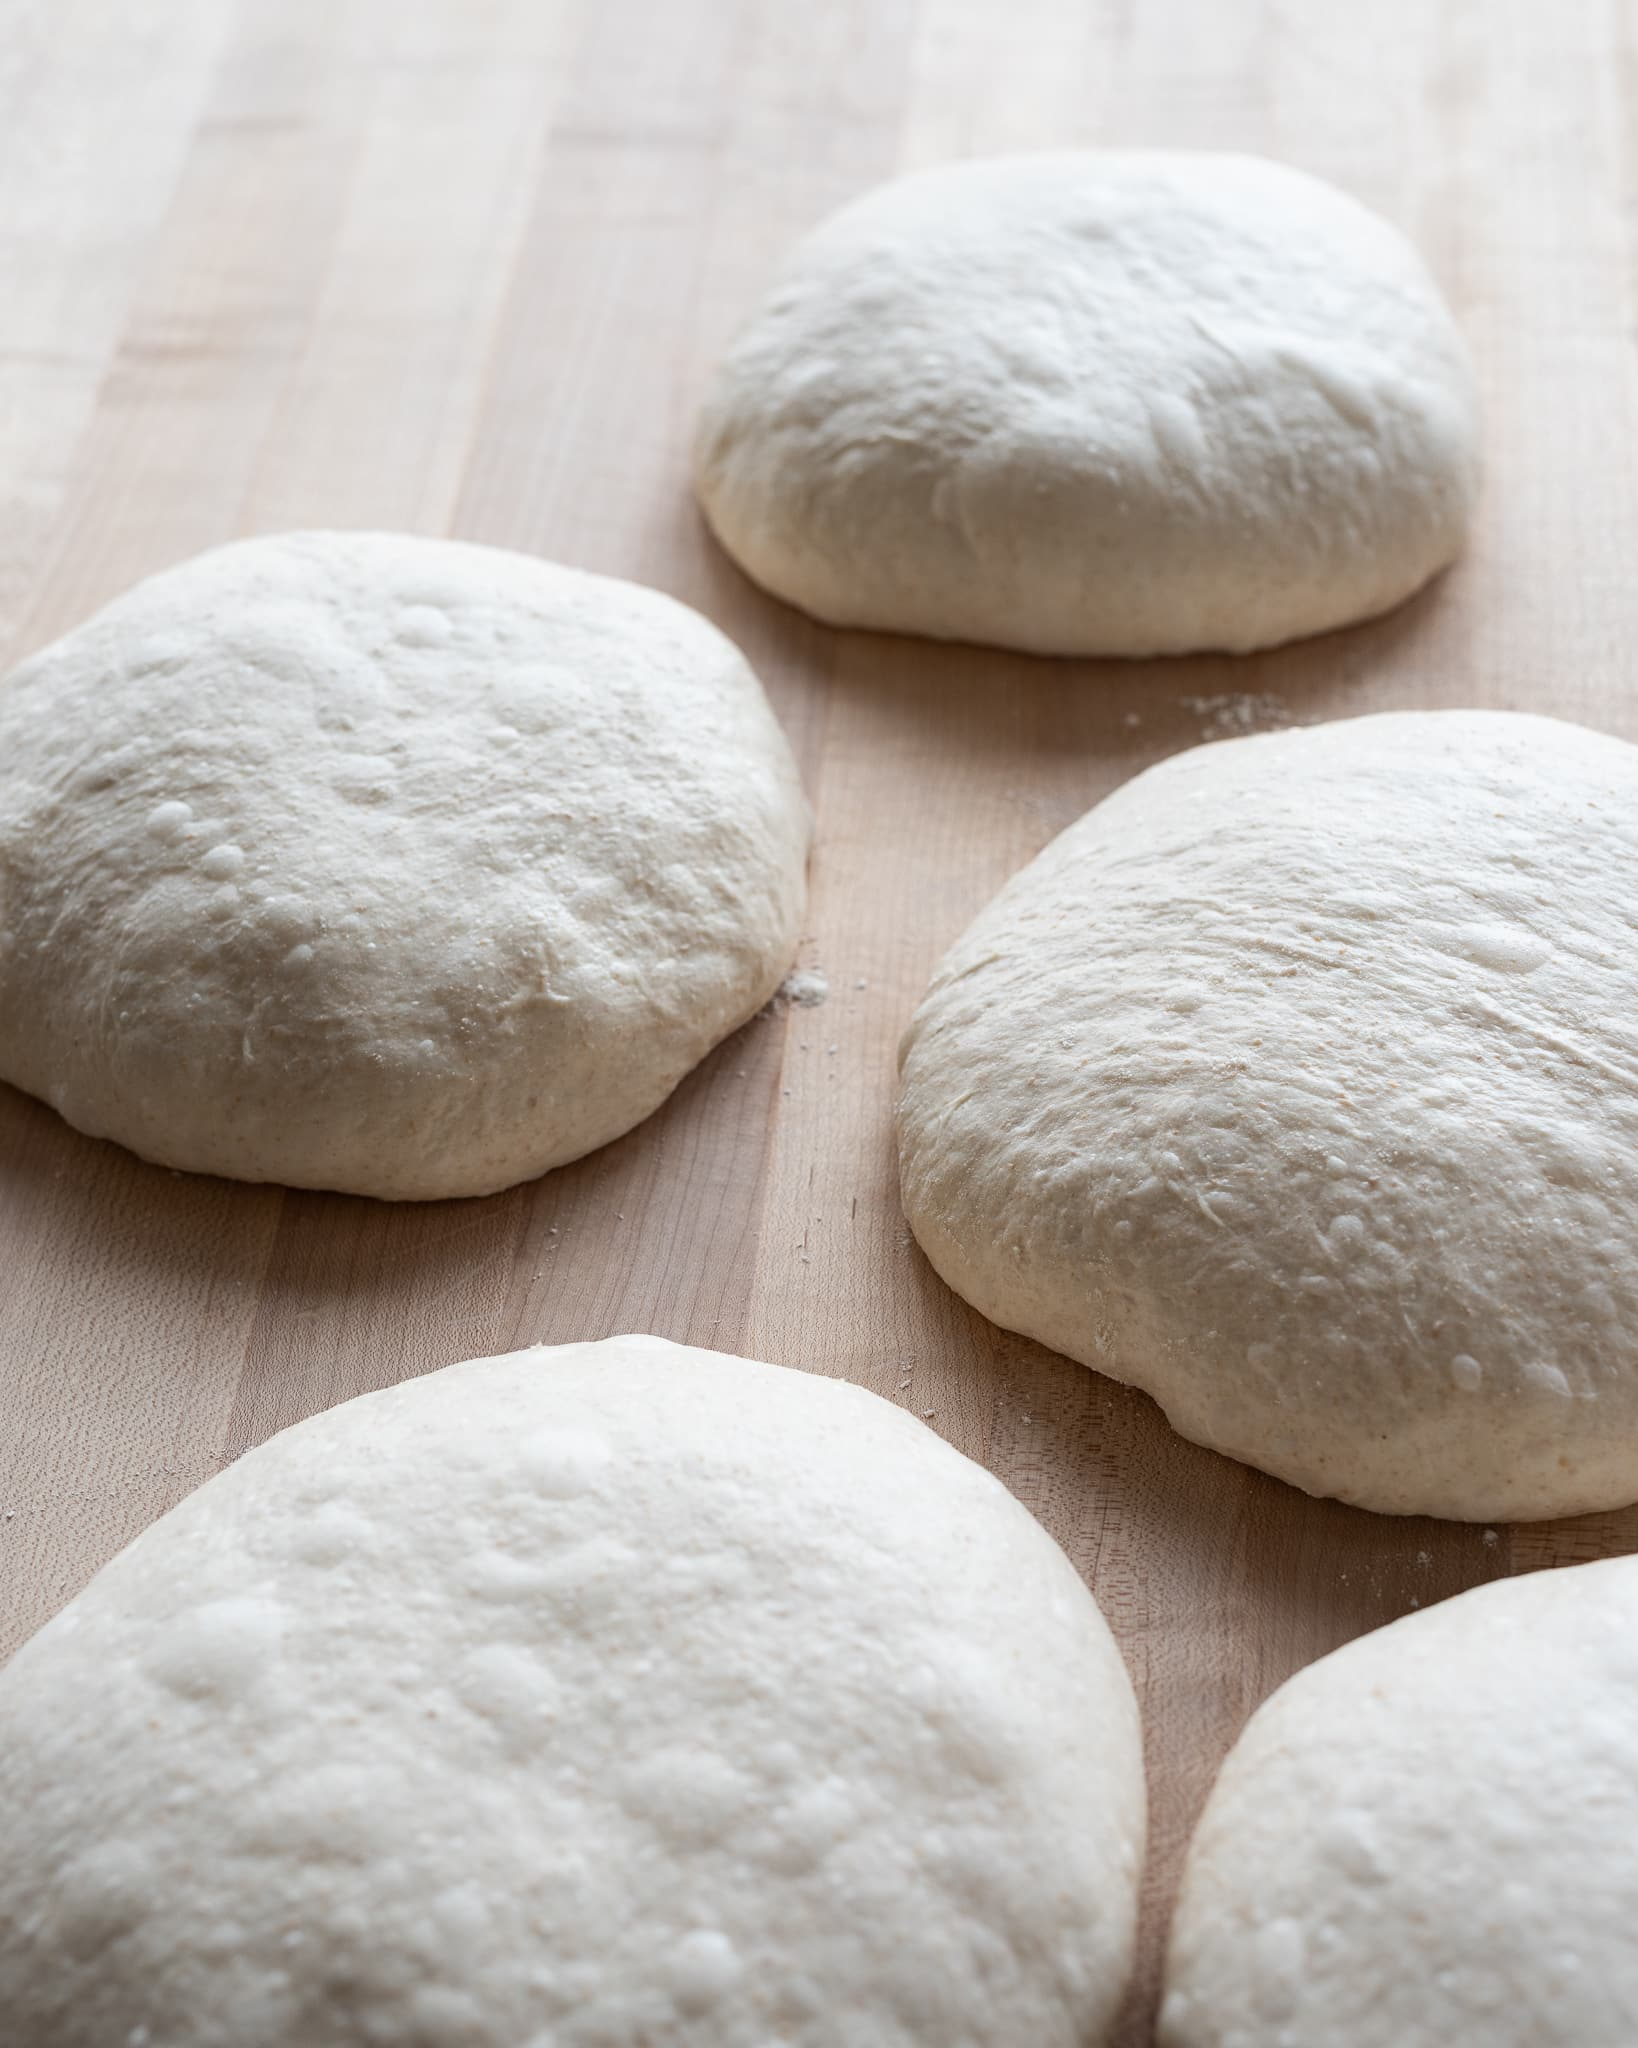 how to preshape bread dough, five preshaped rounds